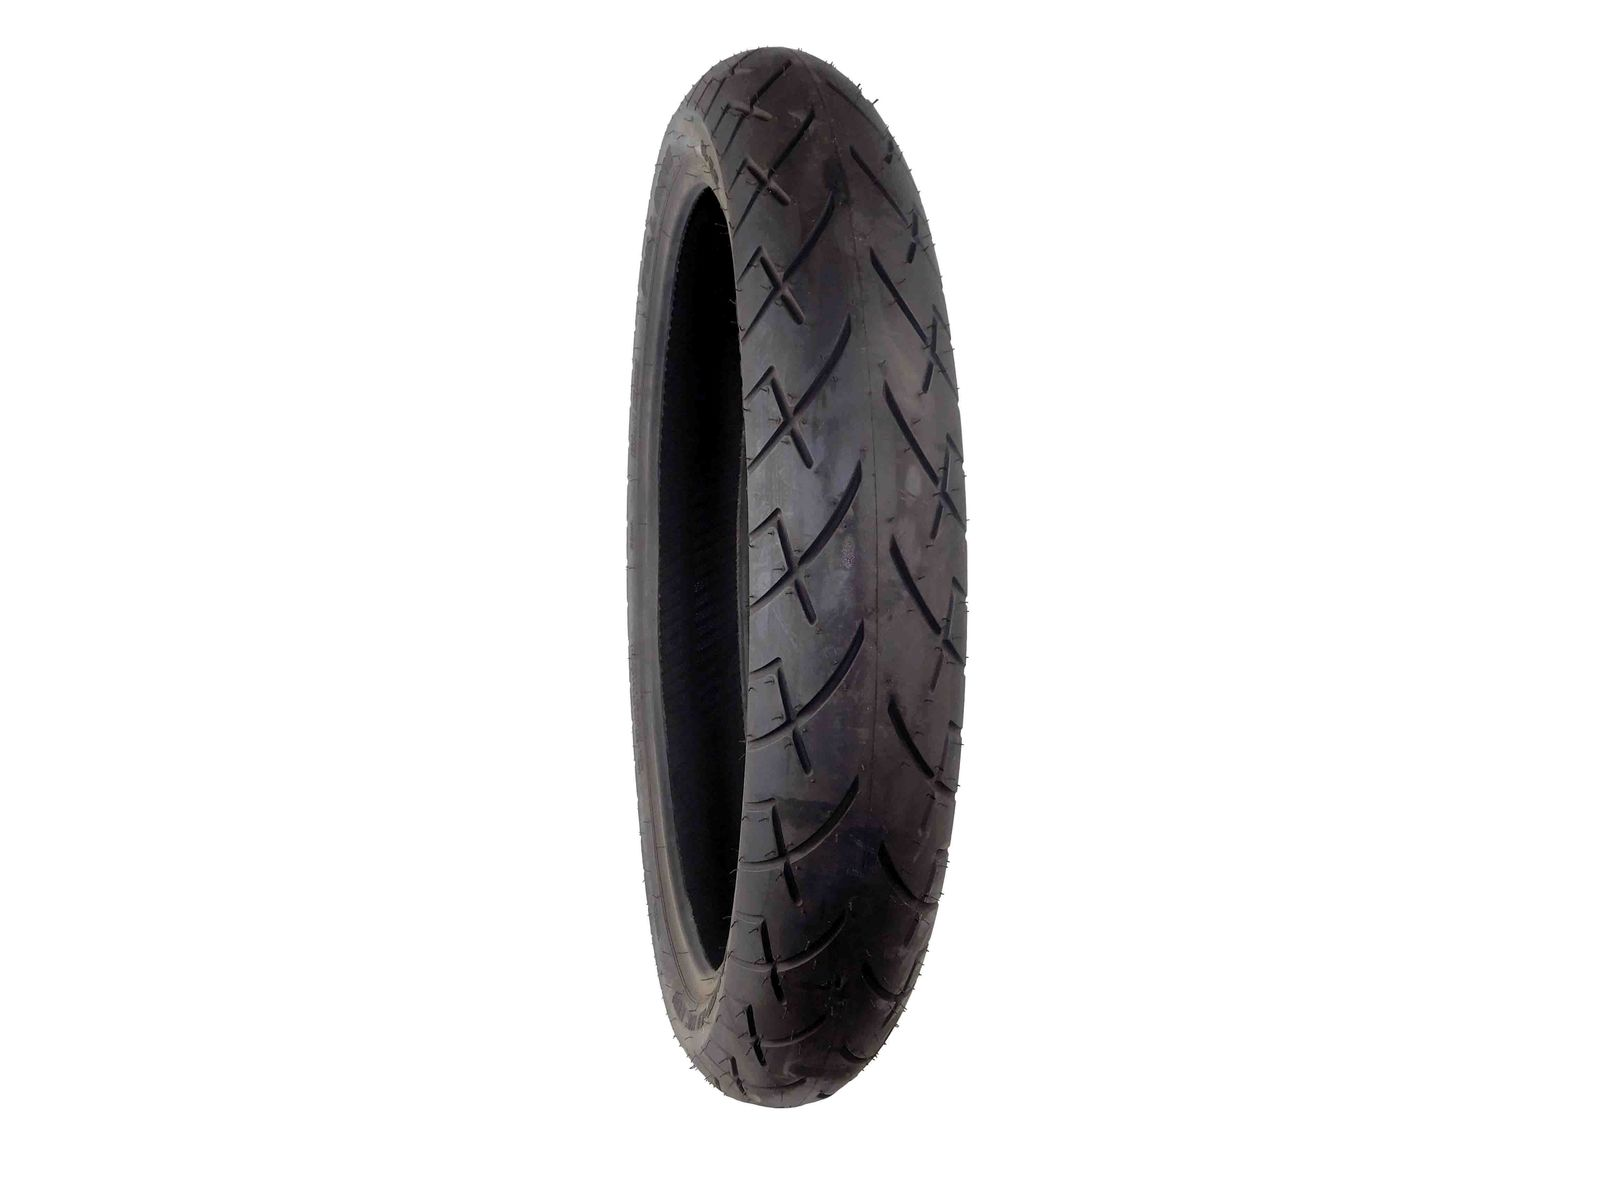 Full-Bore-120-70-21-Front-140-90-15-Rear-Set-Cruiser-Motorcycle-Tires-image-2